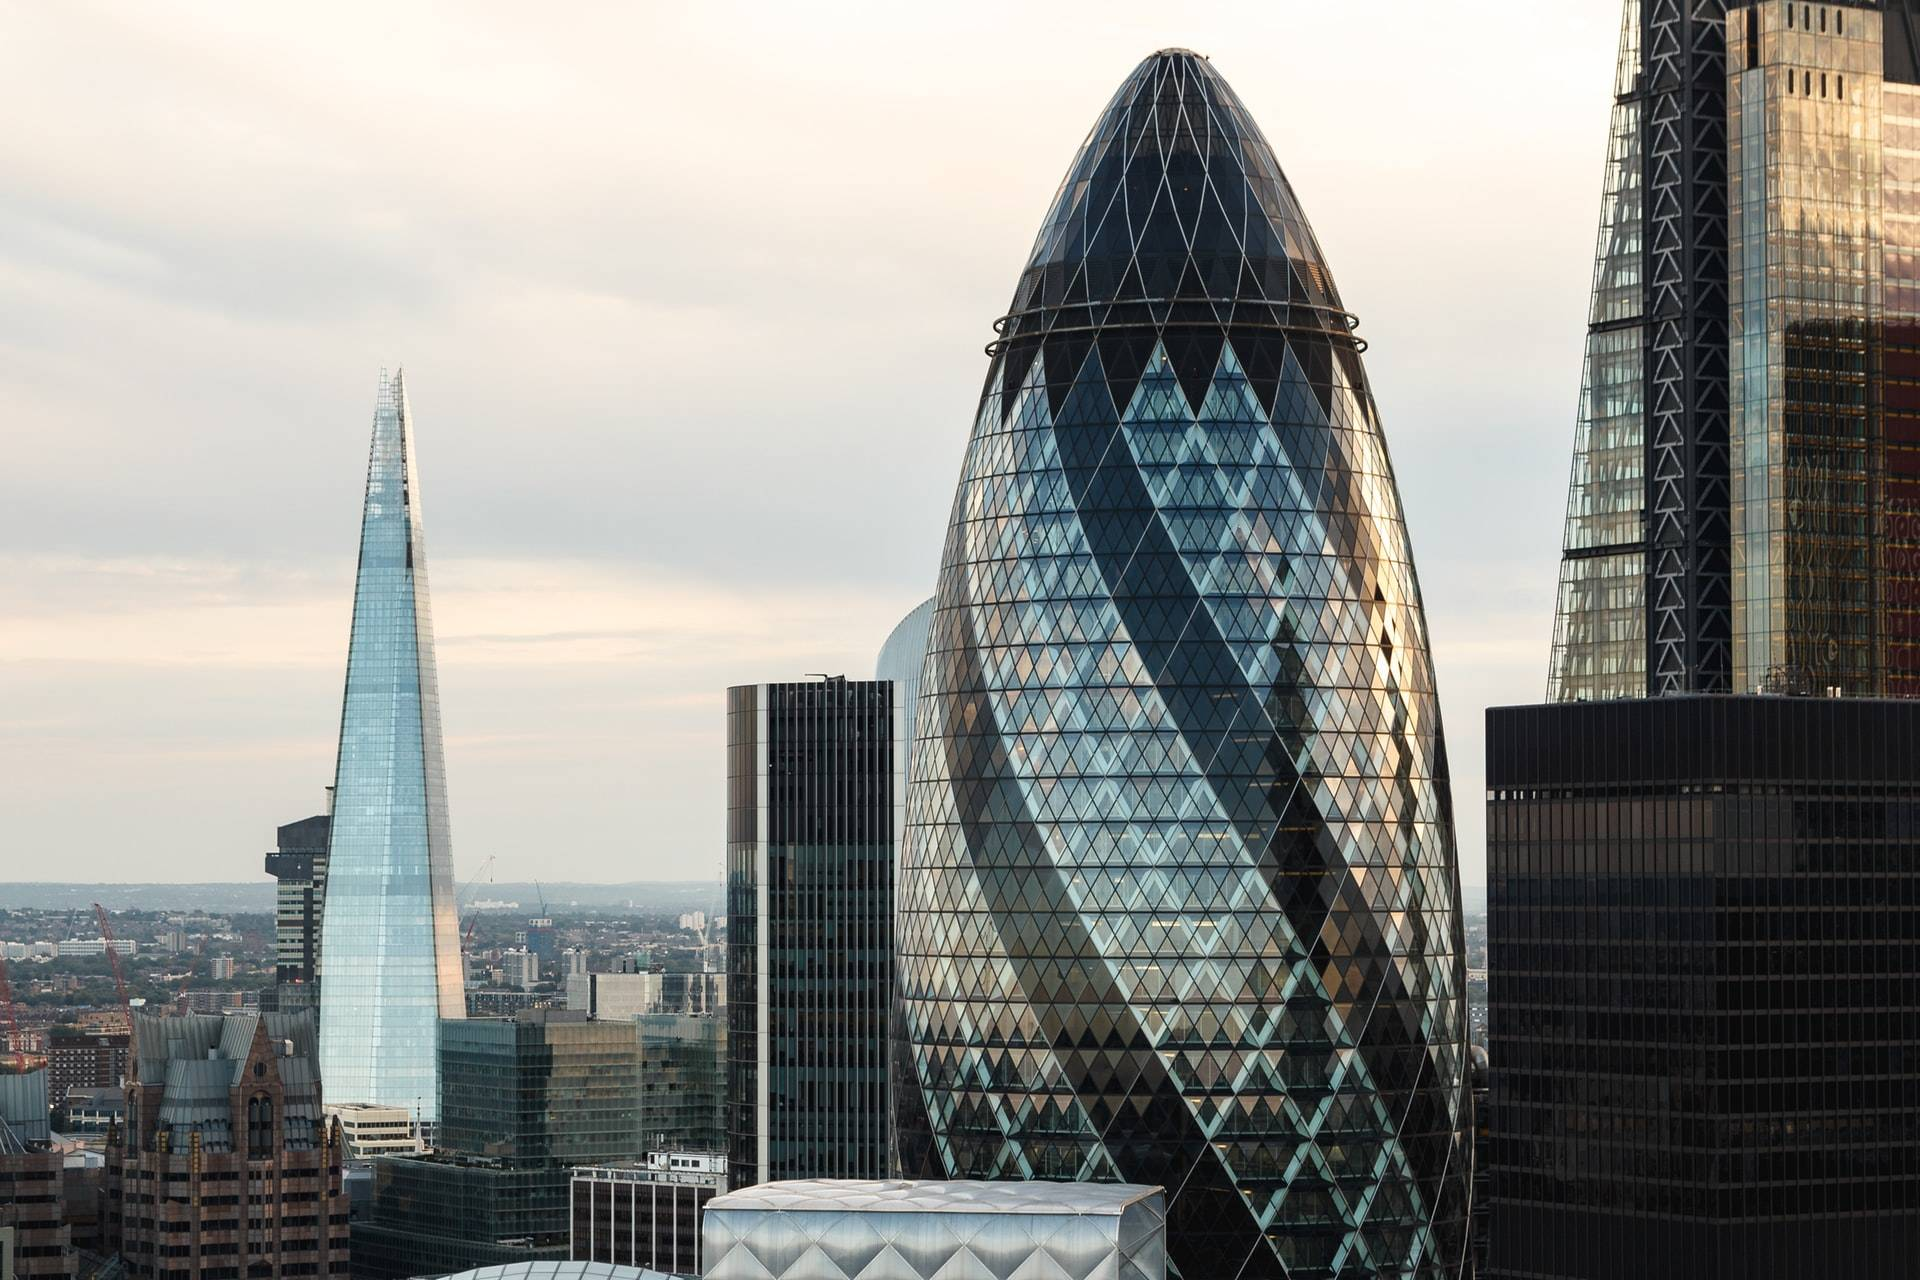 Gherkin Binası (30 St Mary Axe)